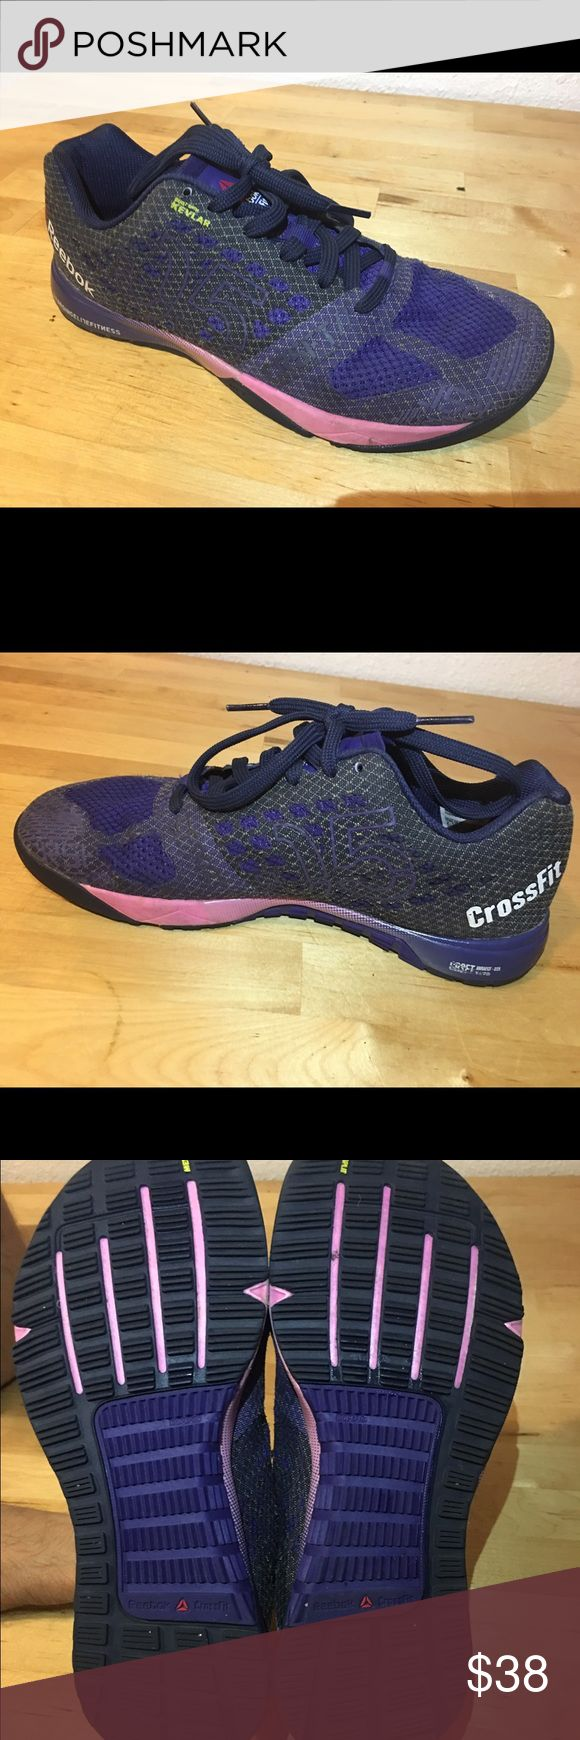 Reebok Nano 5.0 Women's Crossfit Shoes Like new!! Only used twice, selling because it's 1/2 a size too big for me. Reebok Shoes Athletic Shoes